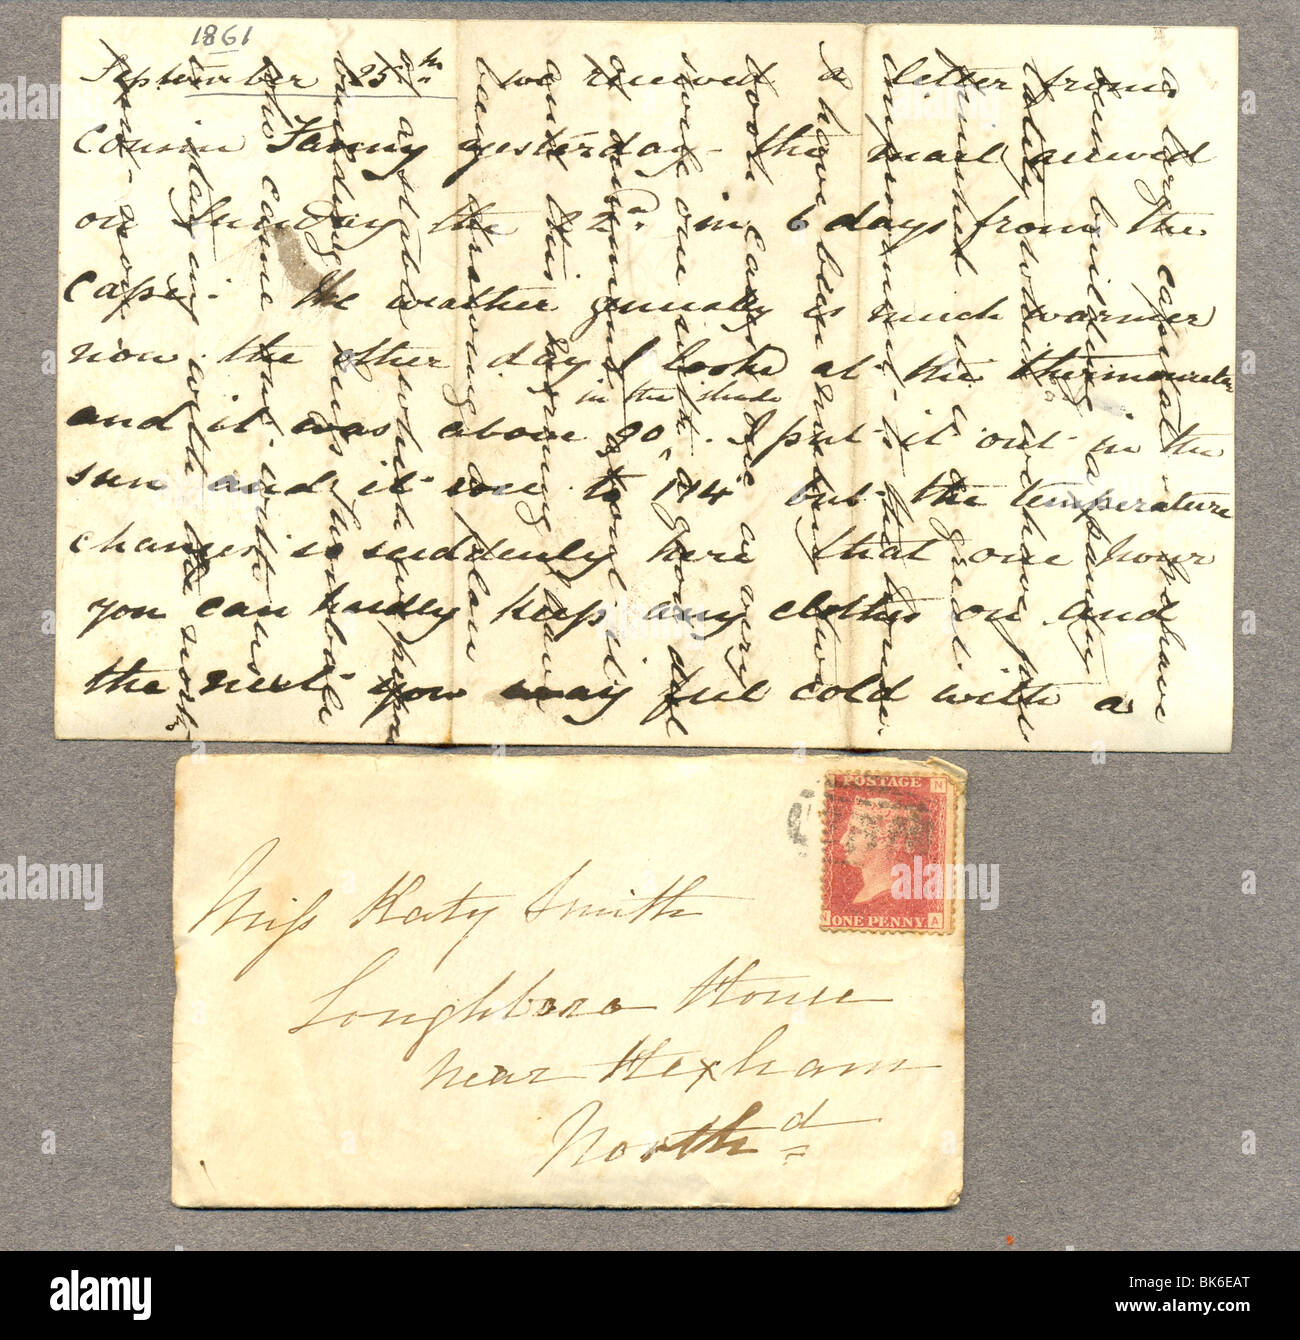 Victorian envelope with letter showing cross writing stock photo victorian envelope with letter showing cross writing thecheapjerseys Image collections